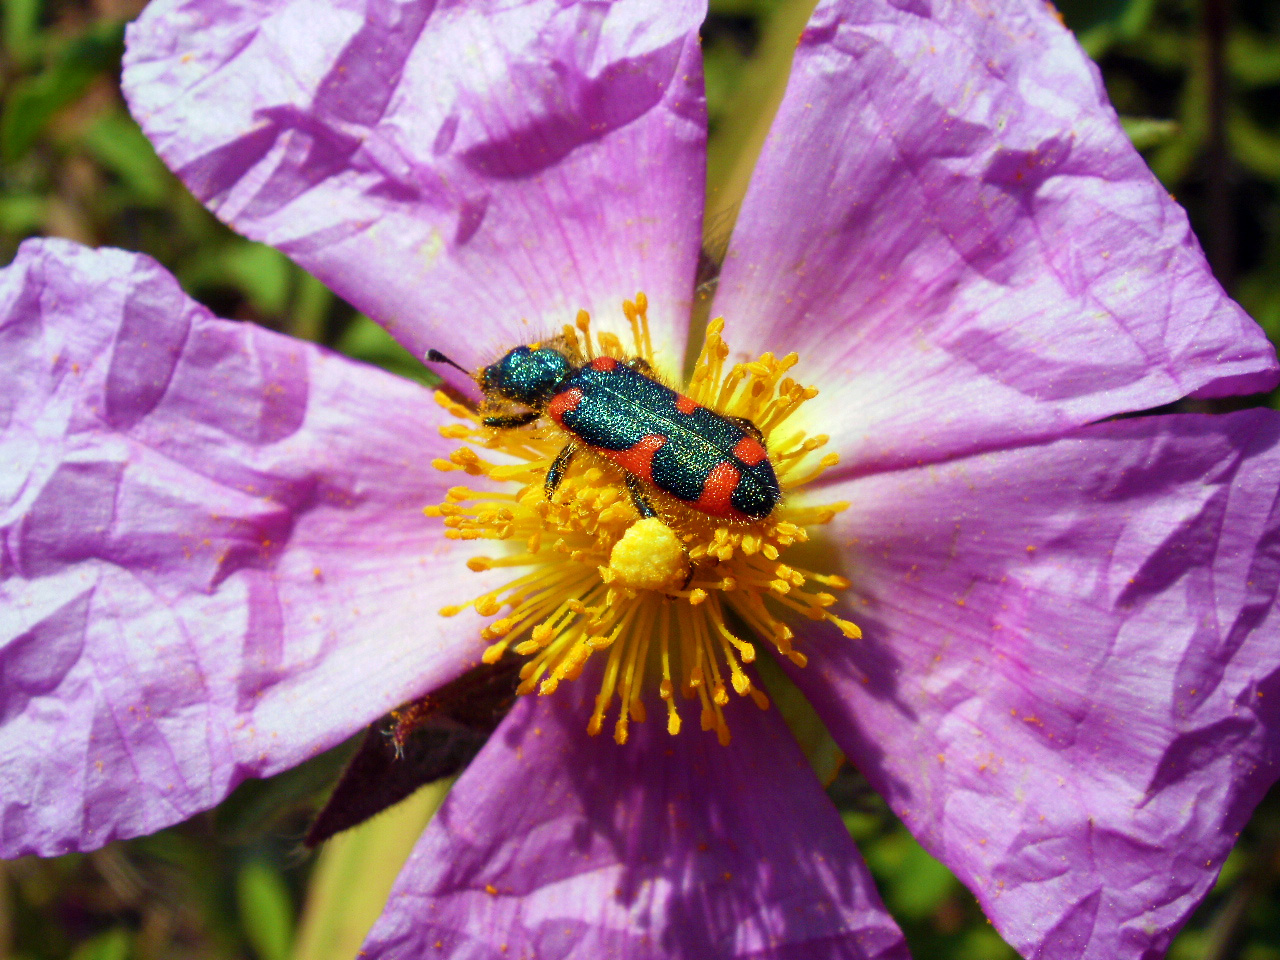 A beetle sits on a flower of phrygana (Cistus creticus).